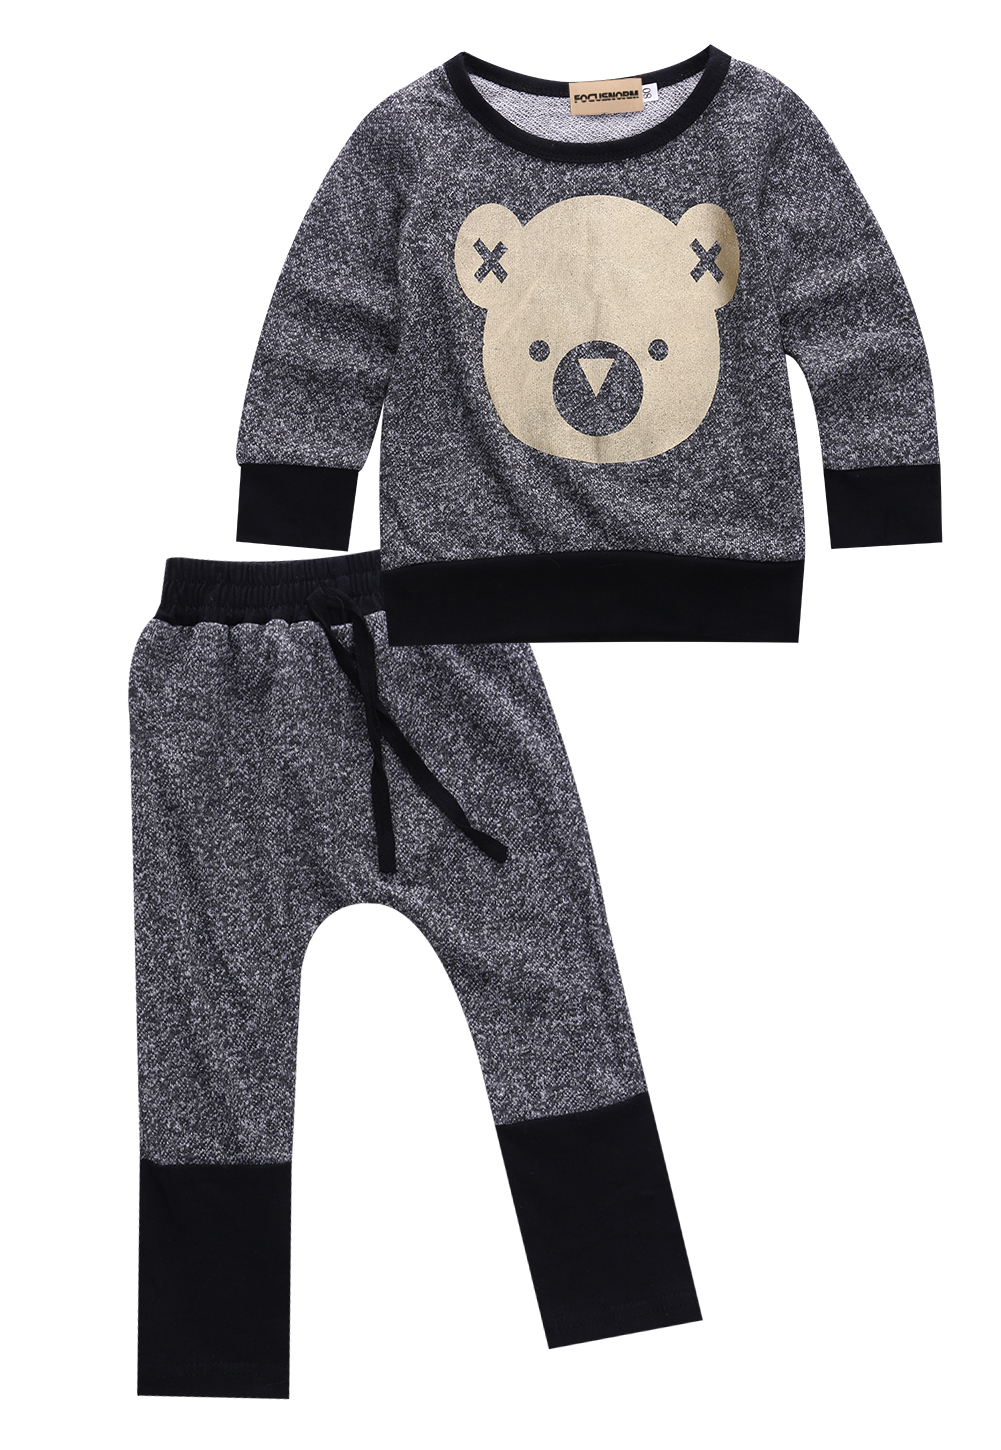 2pcs Toddler Infant Baby Boys Girls Long Sleeves Bear Printed Sweat Shirt +Pants Outfit Clothes Set Size 0-4 toddler baby winter knitted sweater cardigan baby boys girls clothes set long sleeve infant garment baby suit outfit 0 2 years